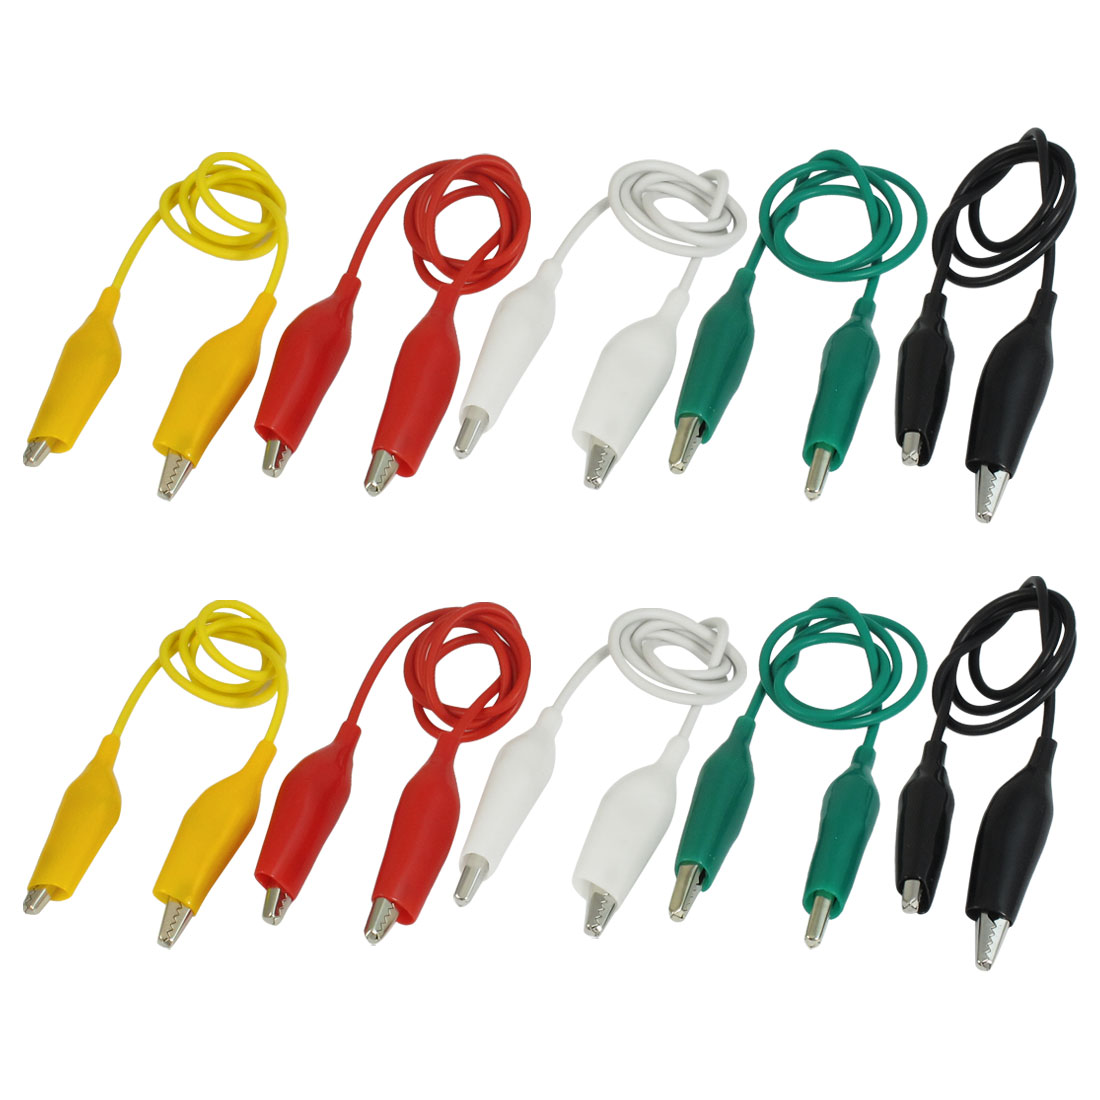 "10 Pcs 20"" Double-ended Alligator Clips Test Lead Jumper Wire 50cm 5 Color"